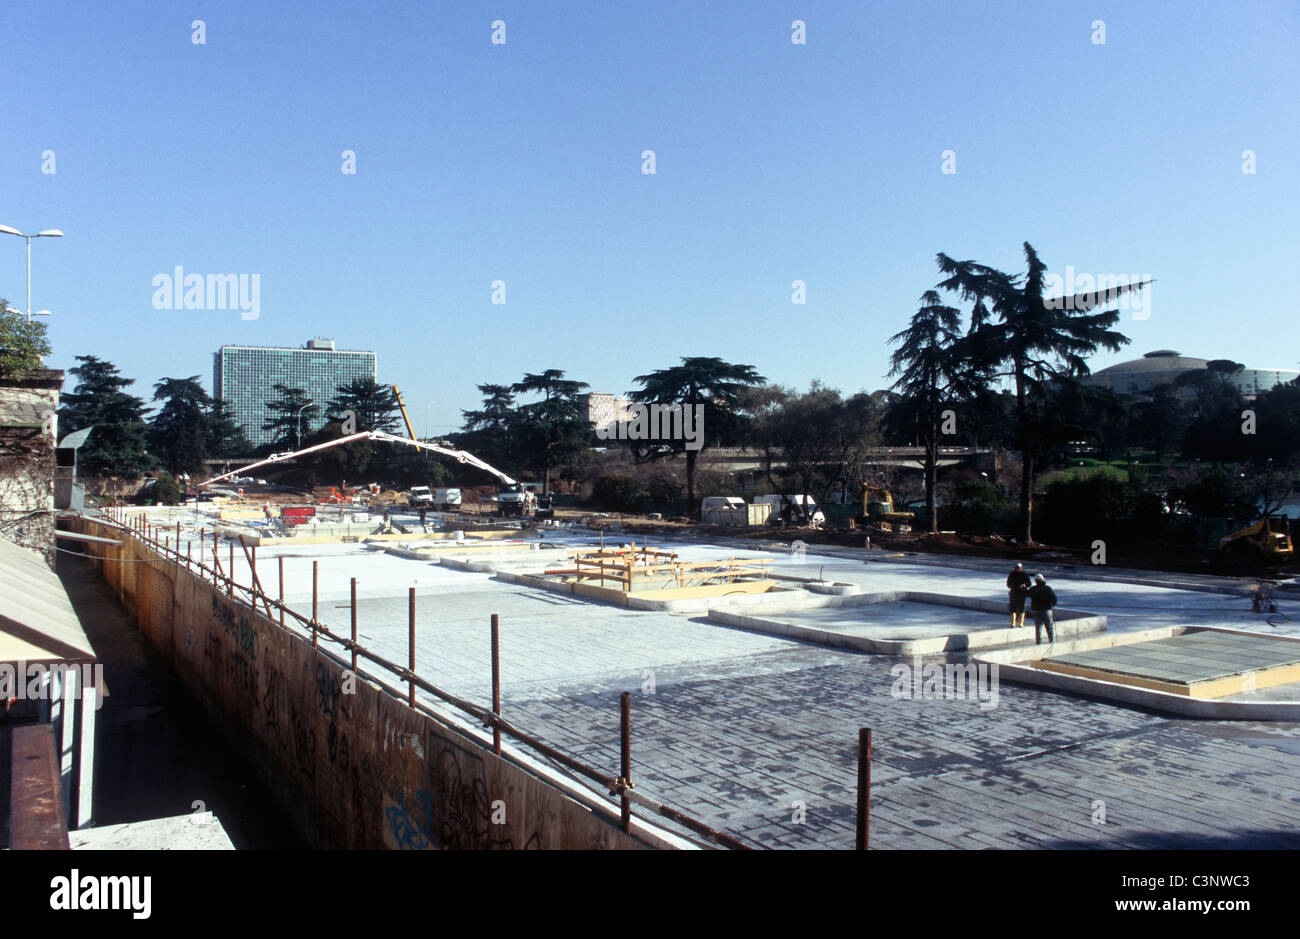 Construction works for the Aquarium of the EUR district in Rome, Italy, 2011. - Stock Image